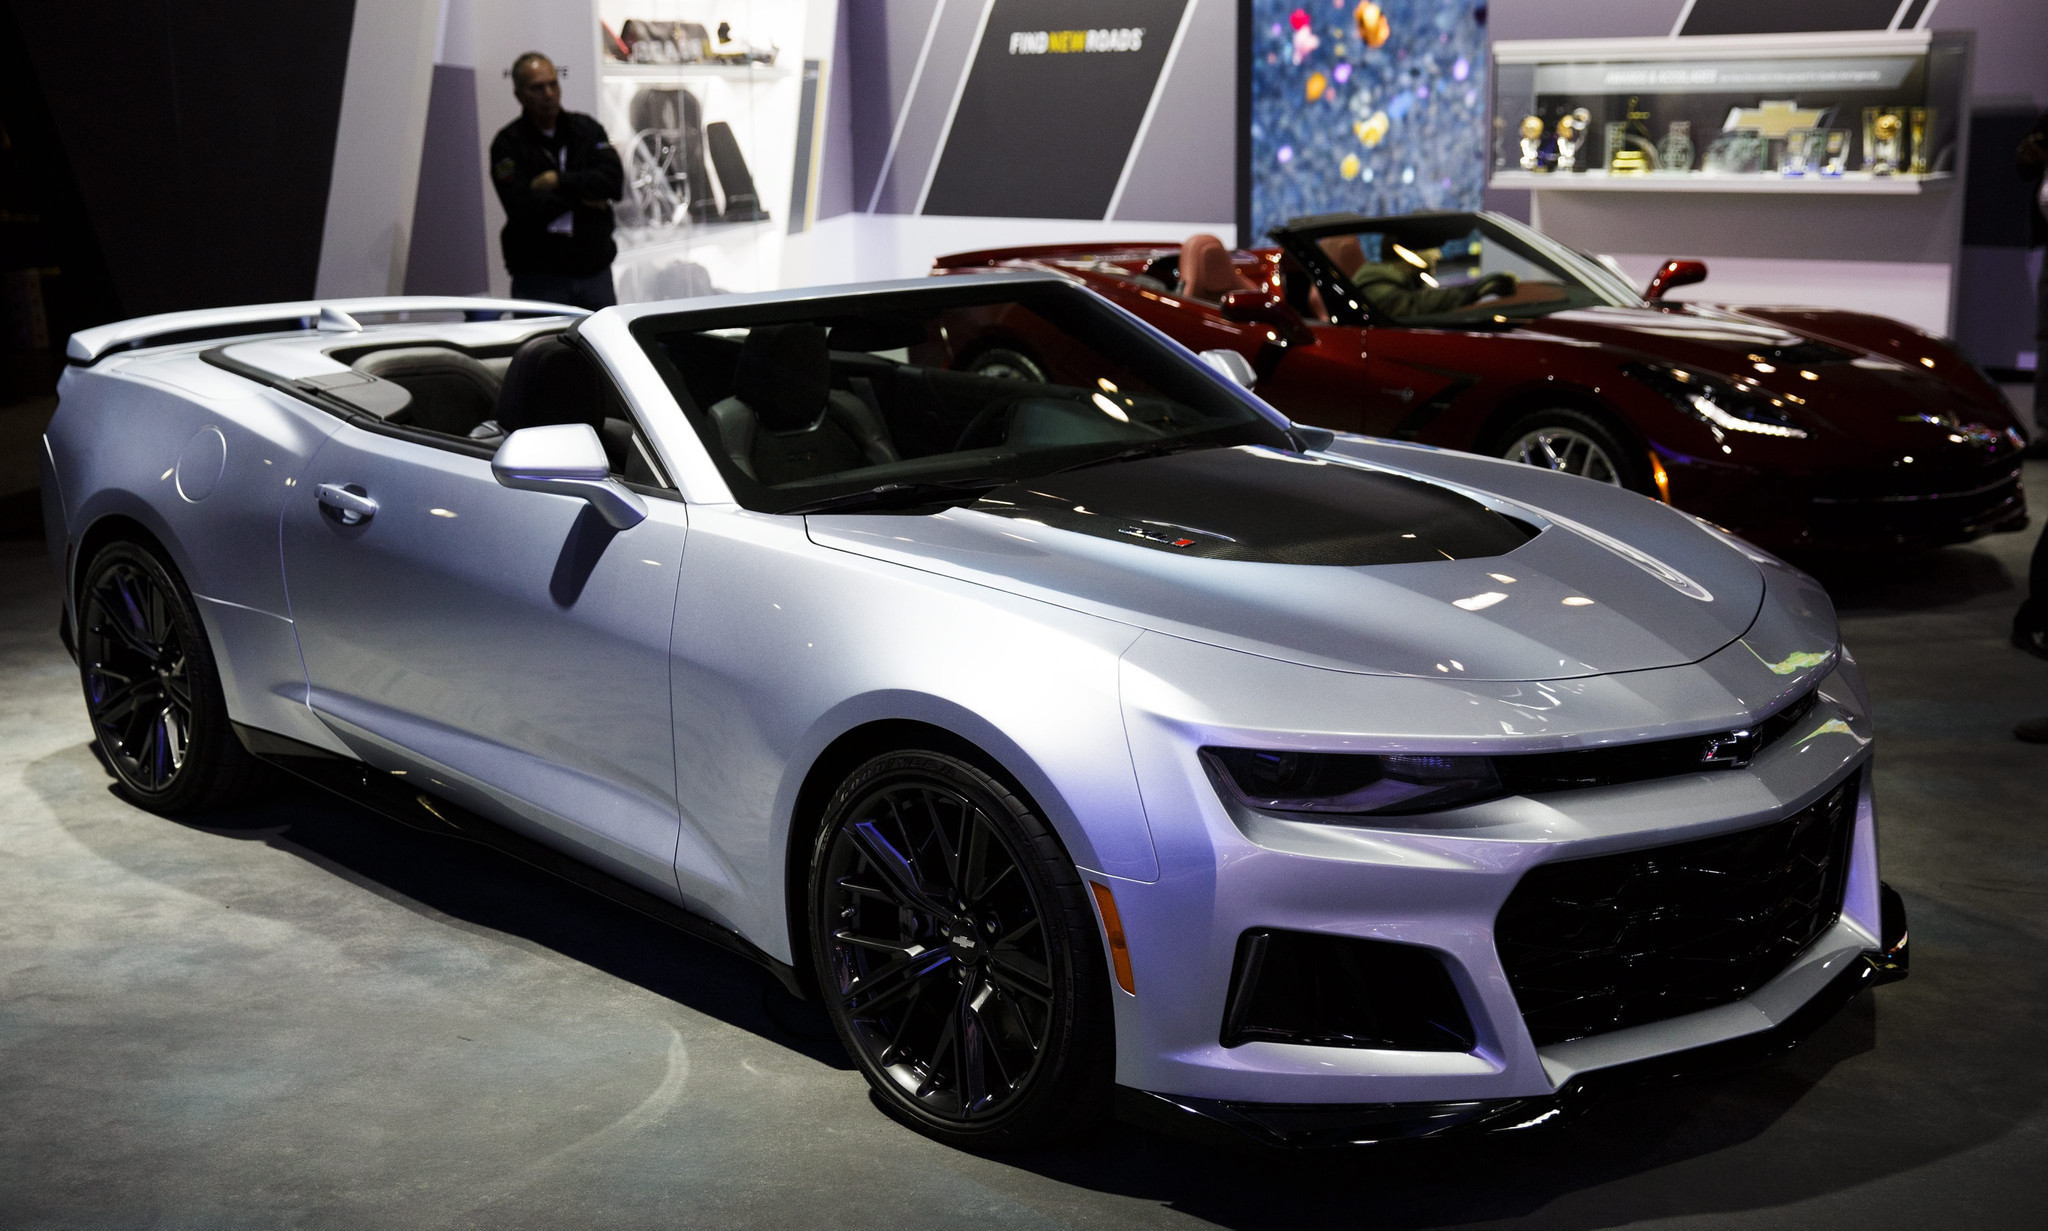 2017 Chevrolet Camaro Zl1 Convertible And Fastback